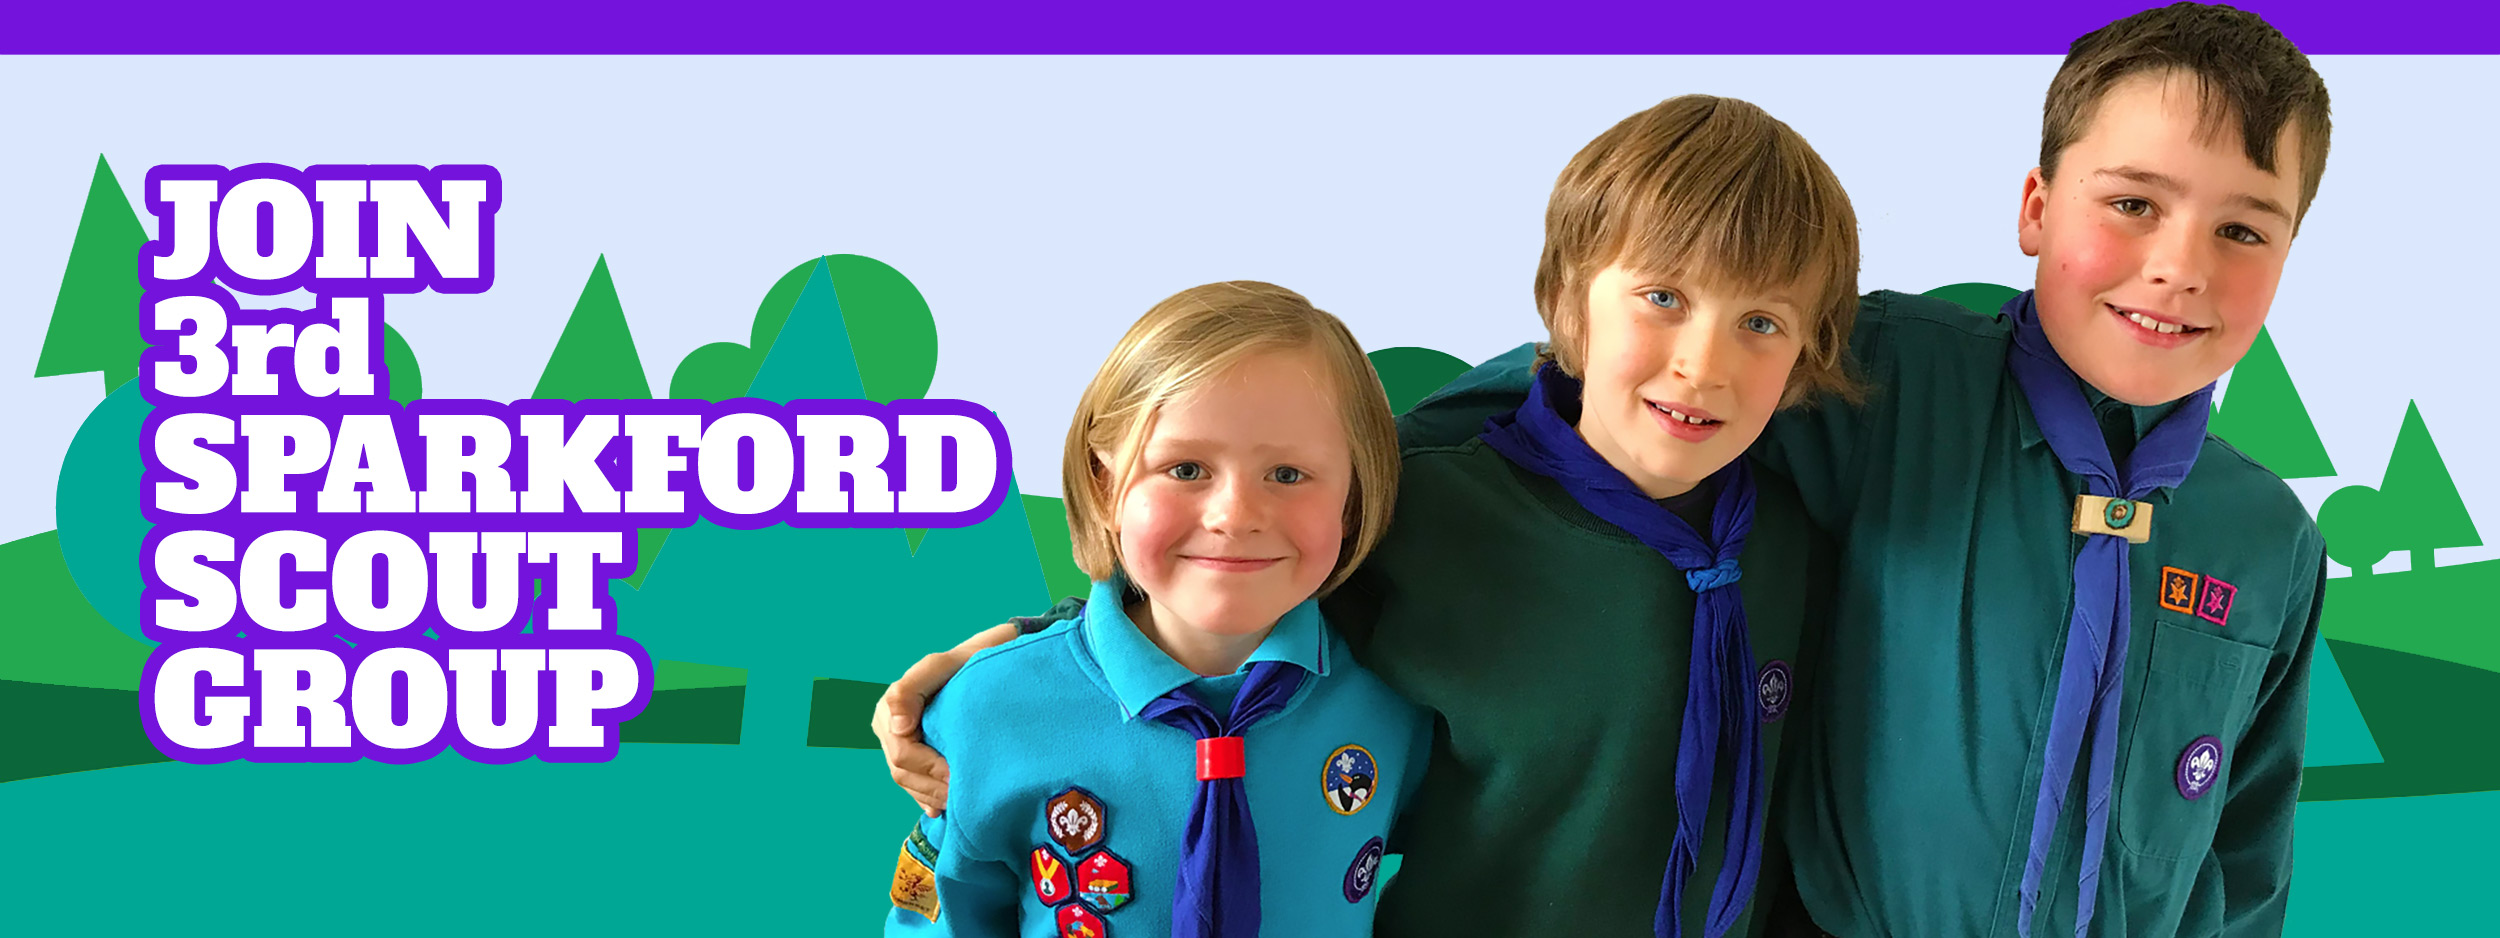 Sparkford Scout Group